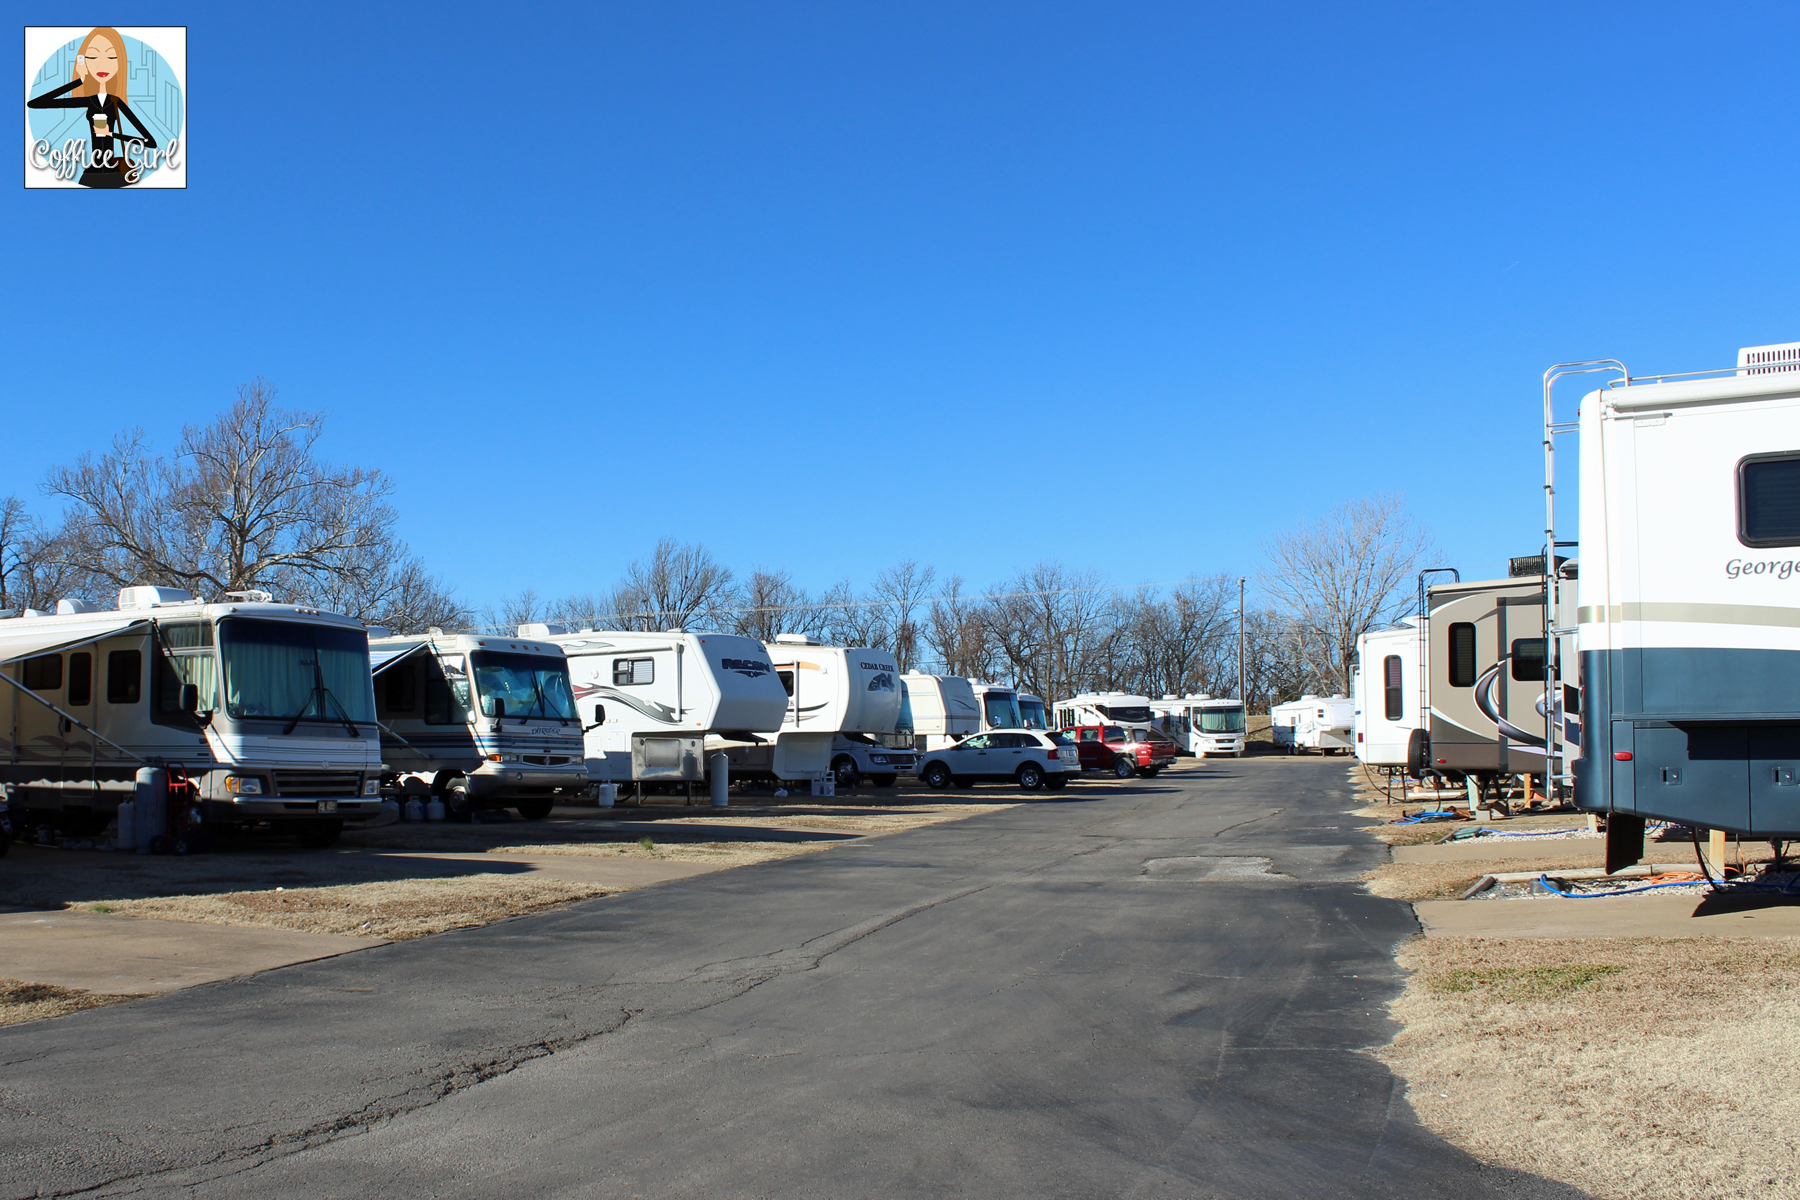 Cable Campgrounds Full Hook Ups Oklahoma Photography Propane Pull